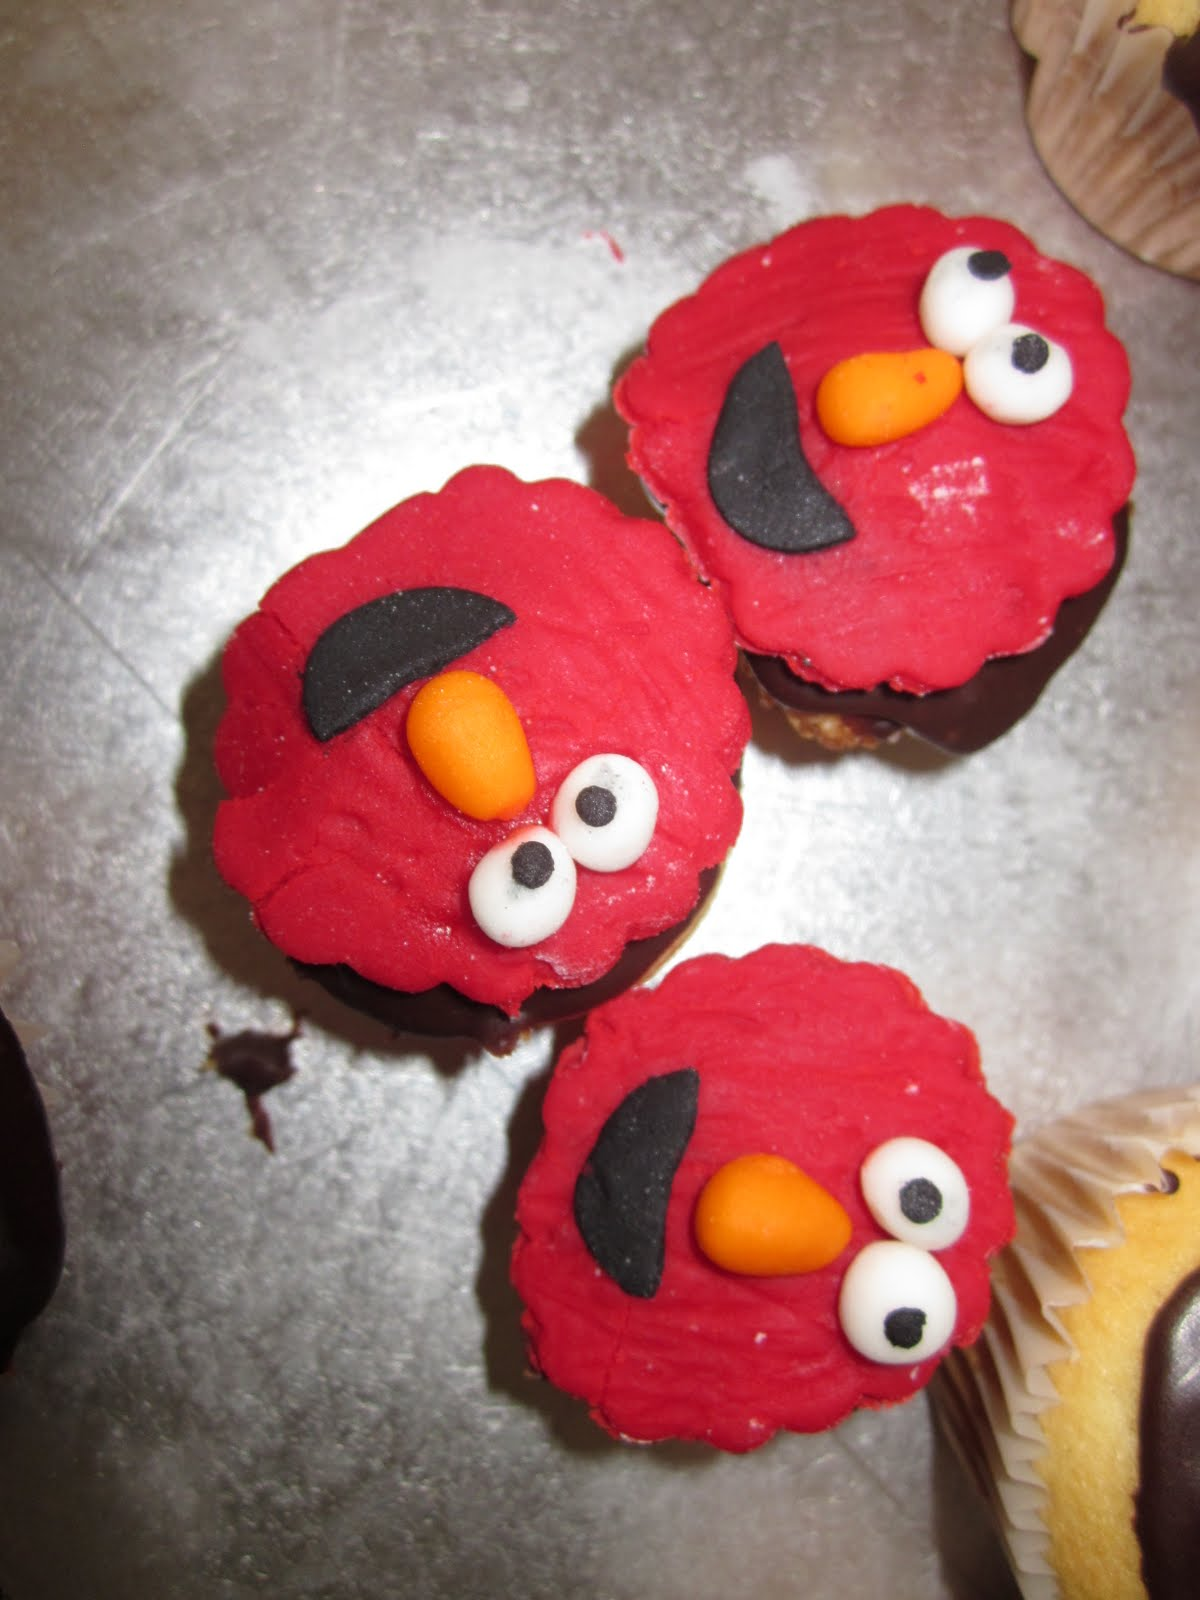 Debs Cakes and Cupcakes: 2nd Birthday Elmo cake - for my son